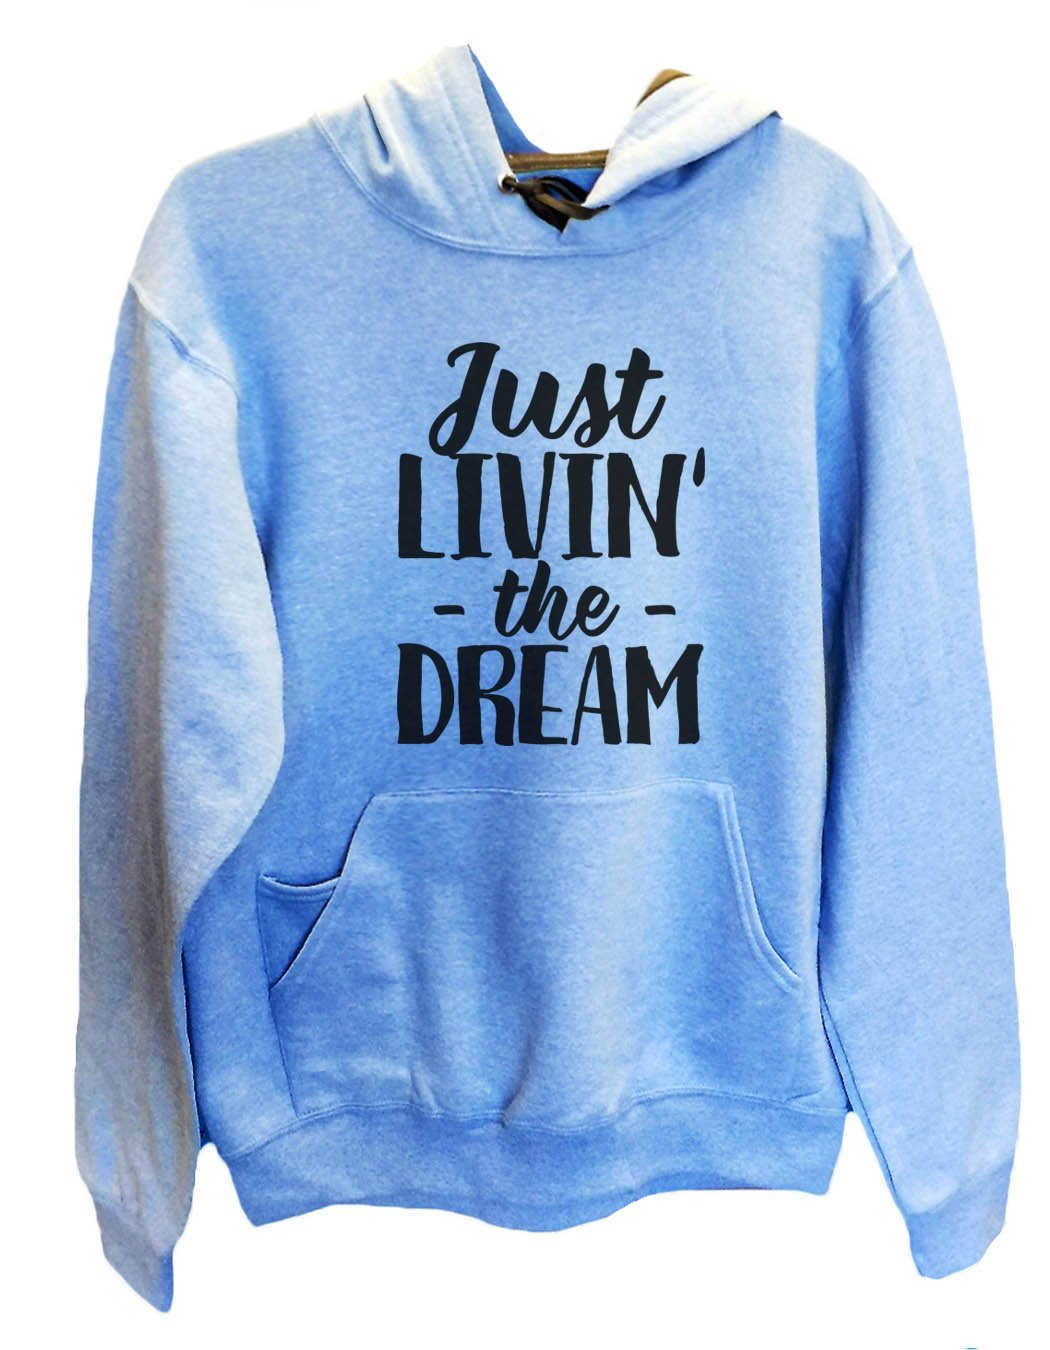 UNISEX HOODIE - Just Livin' The Dream - FUNNY MENS AND WOMENS HOODED SWEATSHIRTS - 2177 Funny Shirt Small / North Carolina Blue